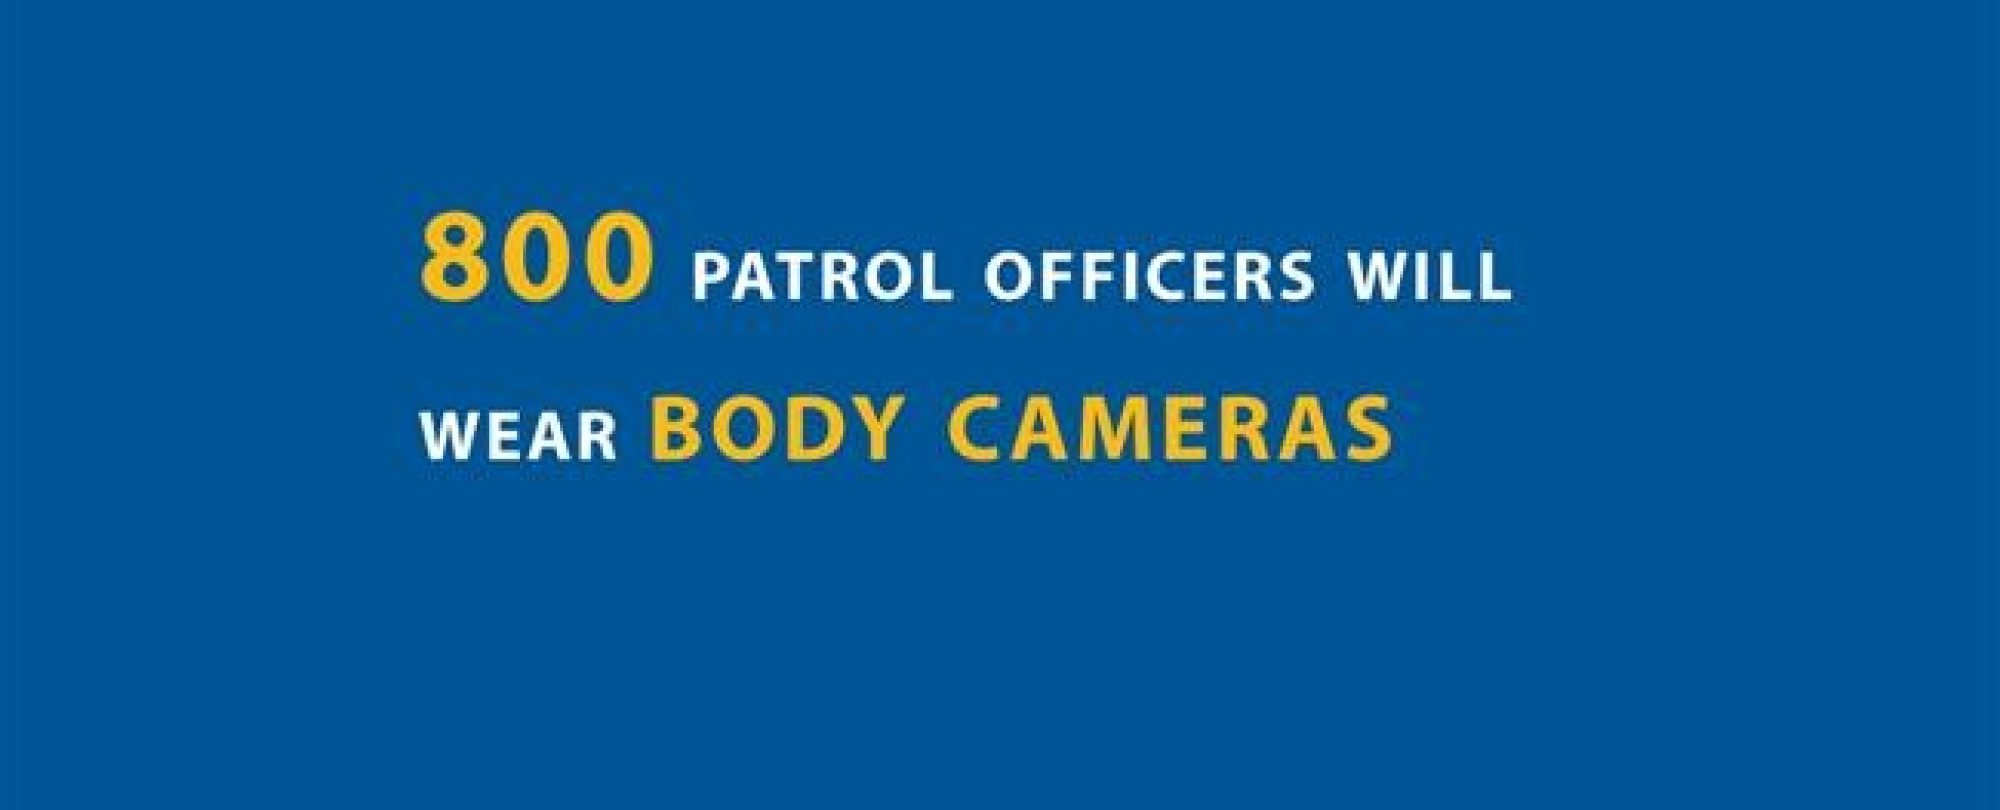 800 patrol officers will wear body cameras